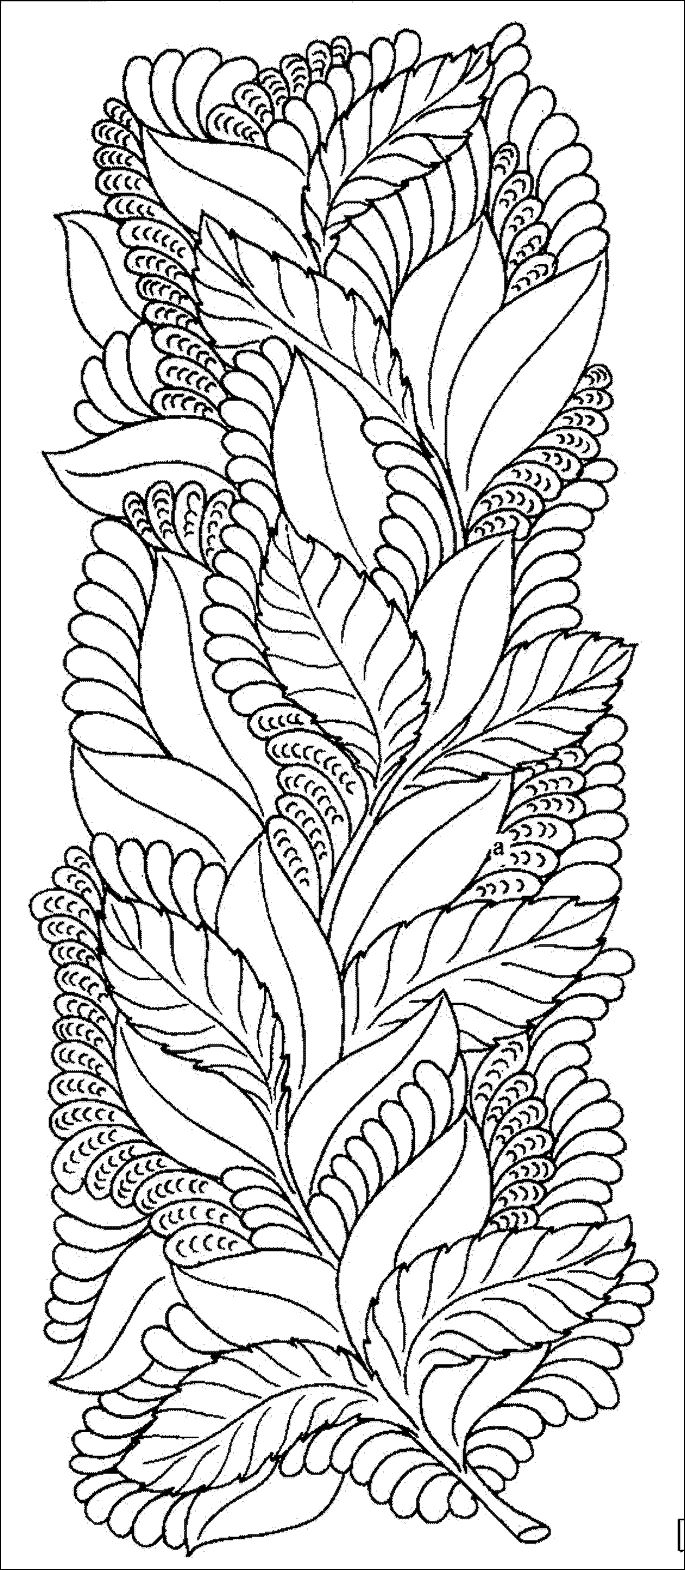 leaf coloring pages for adults - photo#10